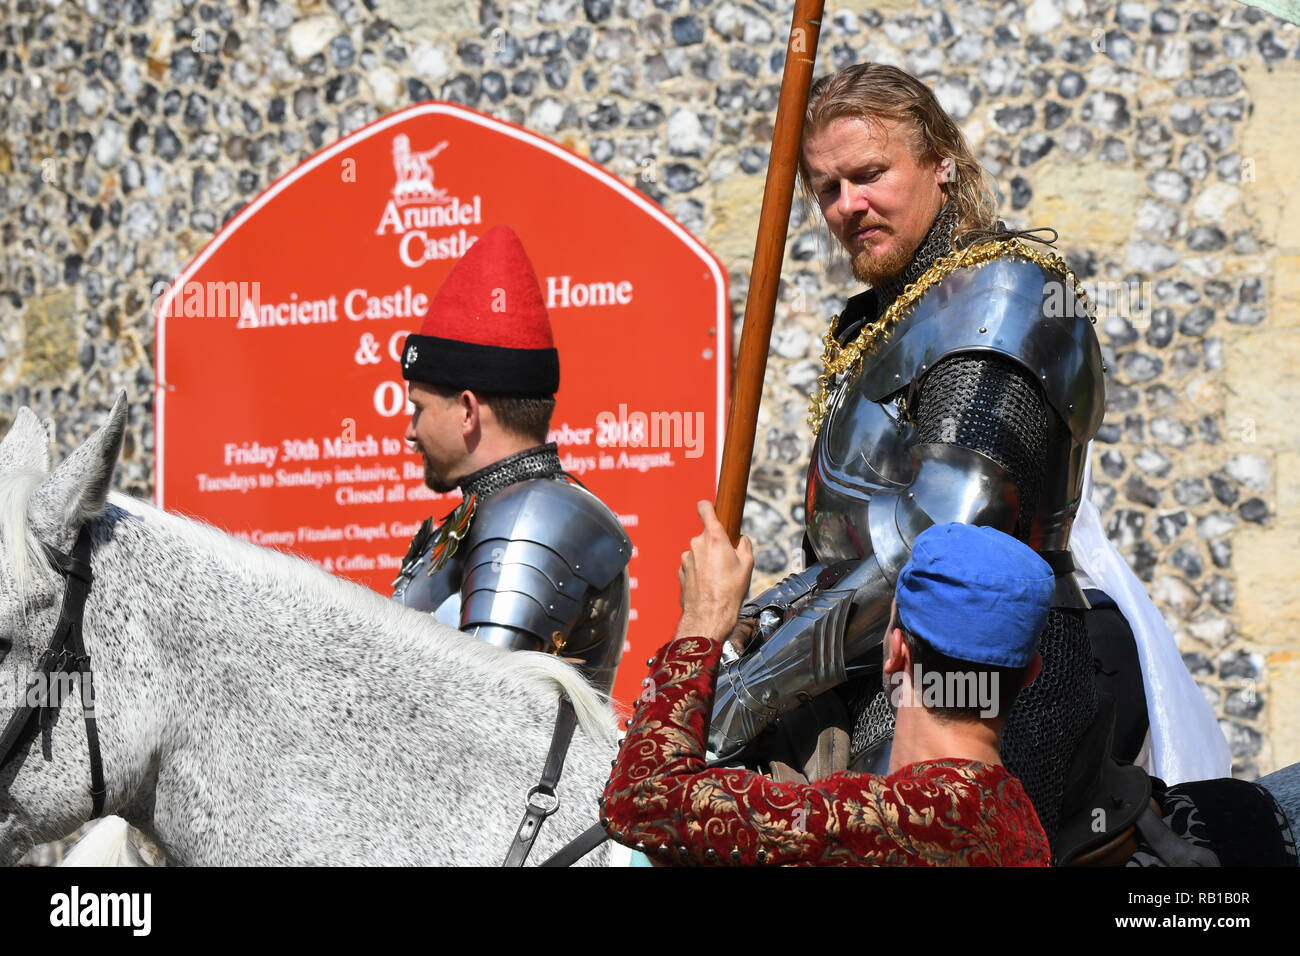 July 2018 International Jousting and Medieval Tournament Week in Arundel, West Sussex, England, UK, - Stock Image